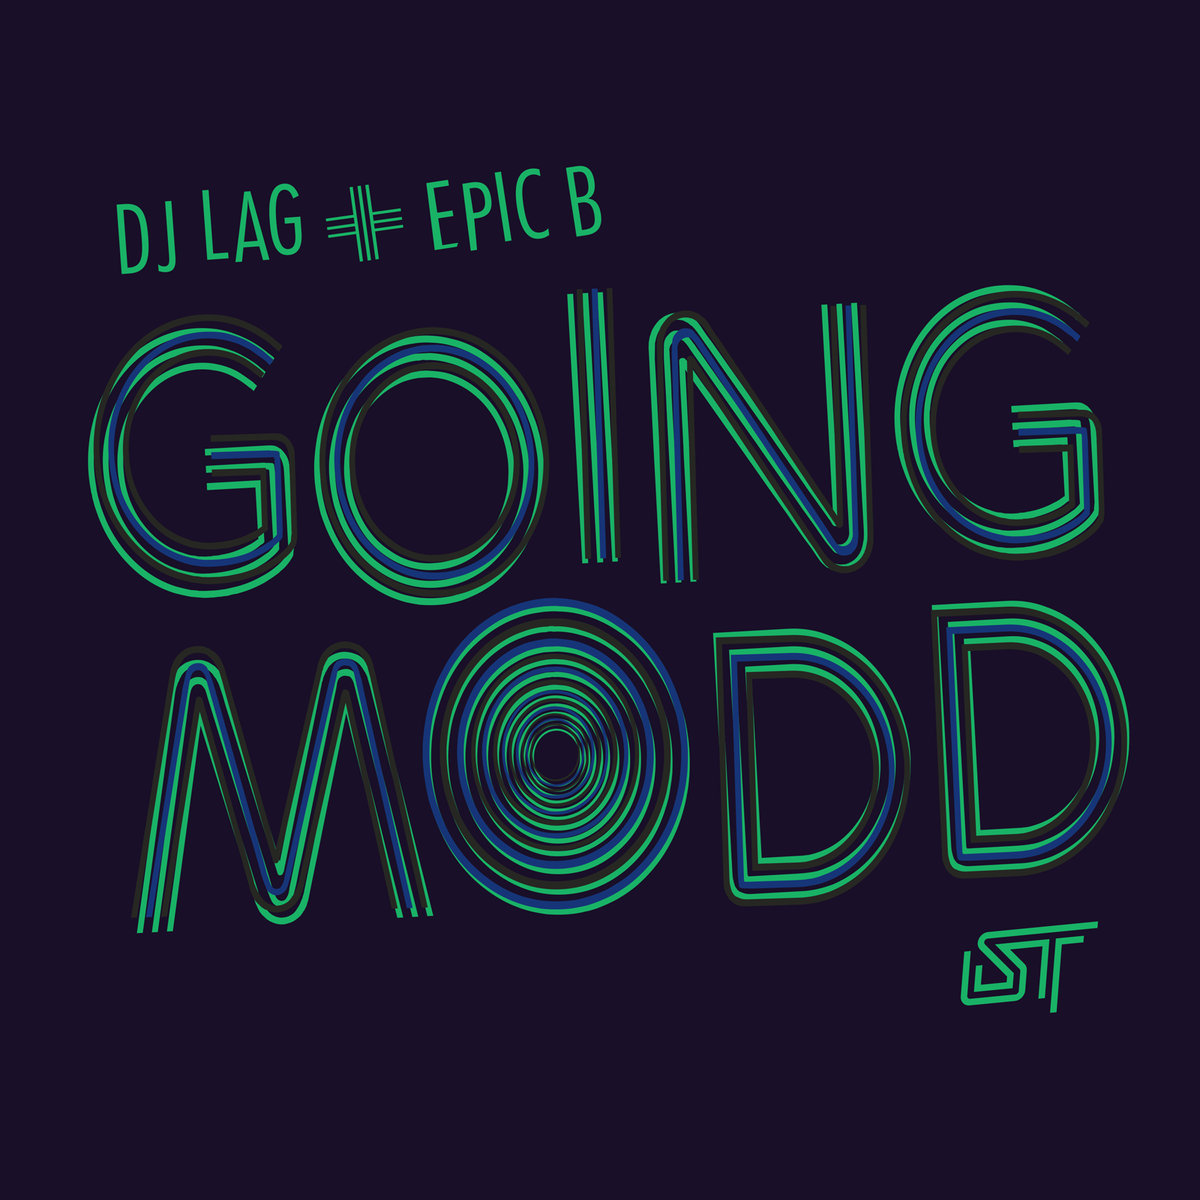 DJ Lag and Epic B link up for new track 'Going Modd' on